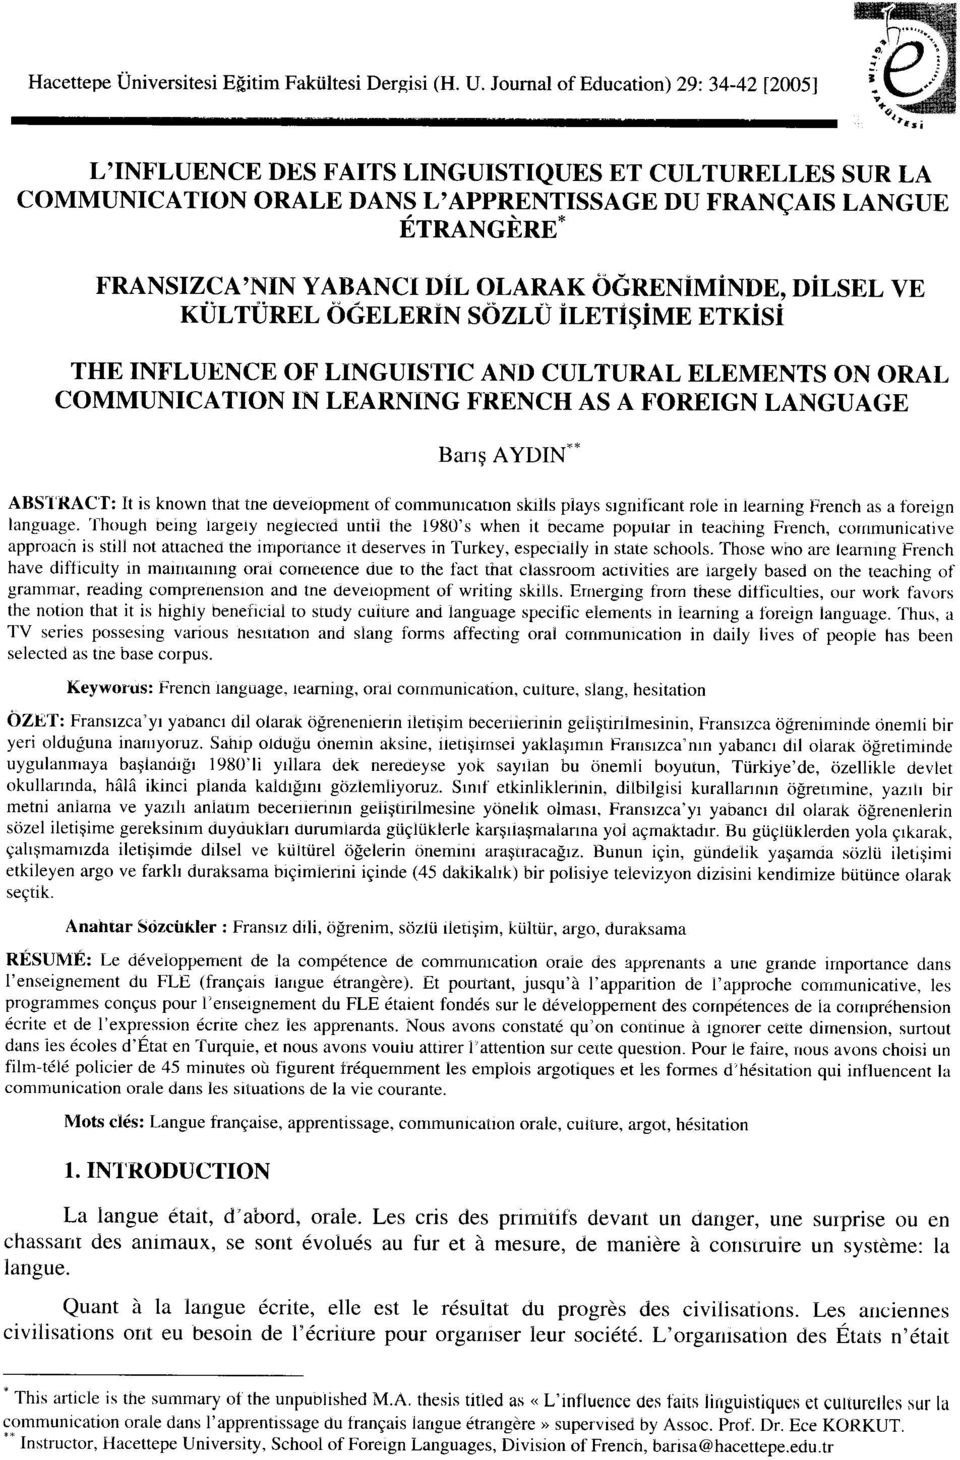 OLARAK ÖGRENİMİNDE, DİLSEL VE KÜL TÜREL ÖGELERIN SÖZLÜ İLETIŞİME ETKİsİ THE INFLUENCE OF LINGUISTIC AND CUL TURAL ELEMENTS ON ORAL COMMUNICA TION IN LEARNING FRENCH AS A FOREIGN LANGUAGE Barış AYDIN""